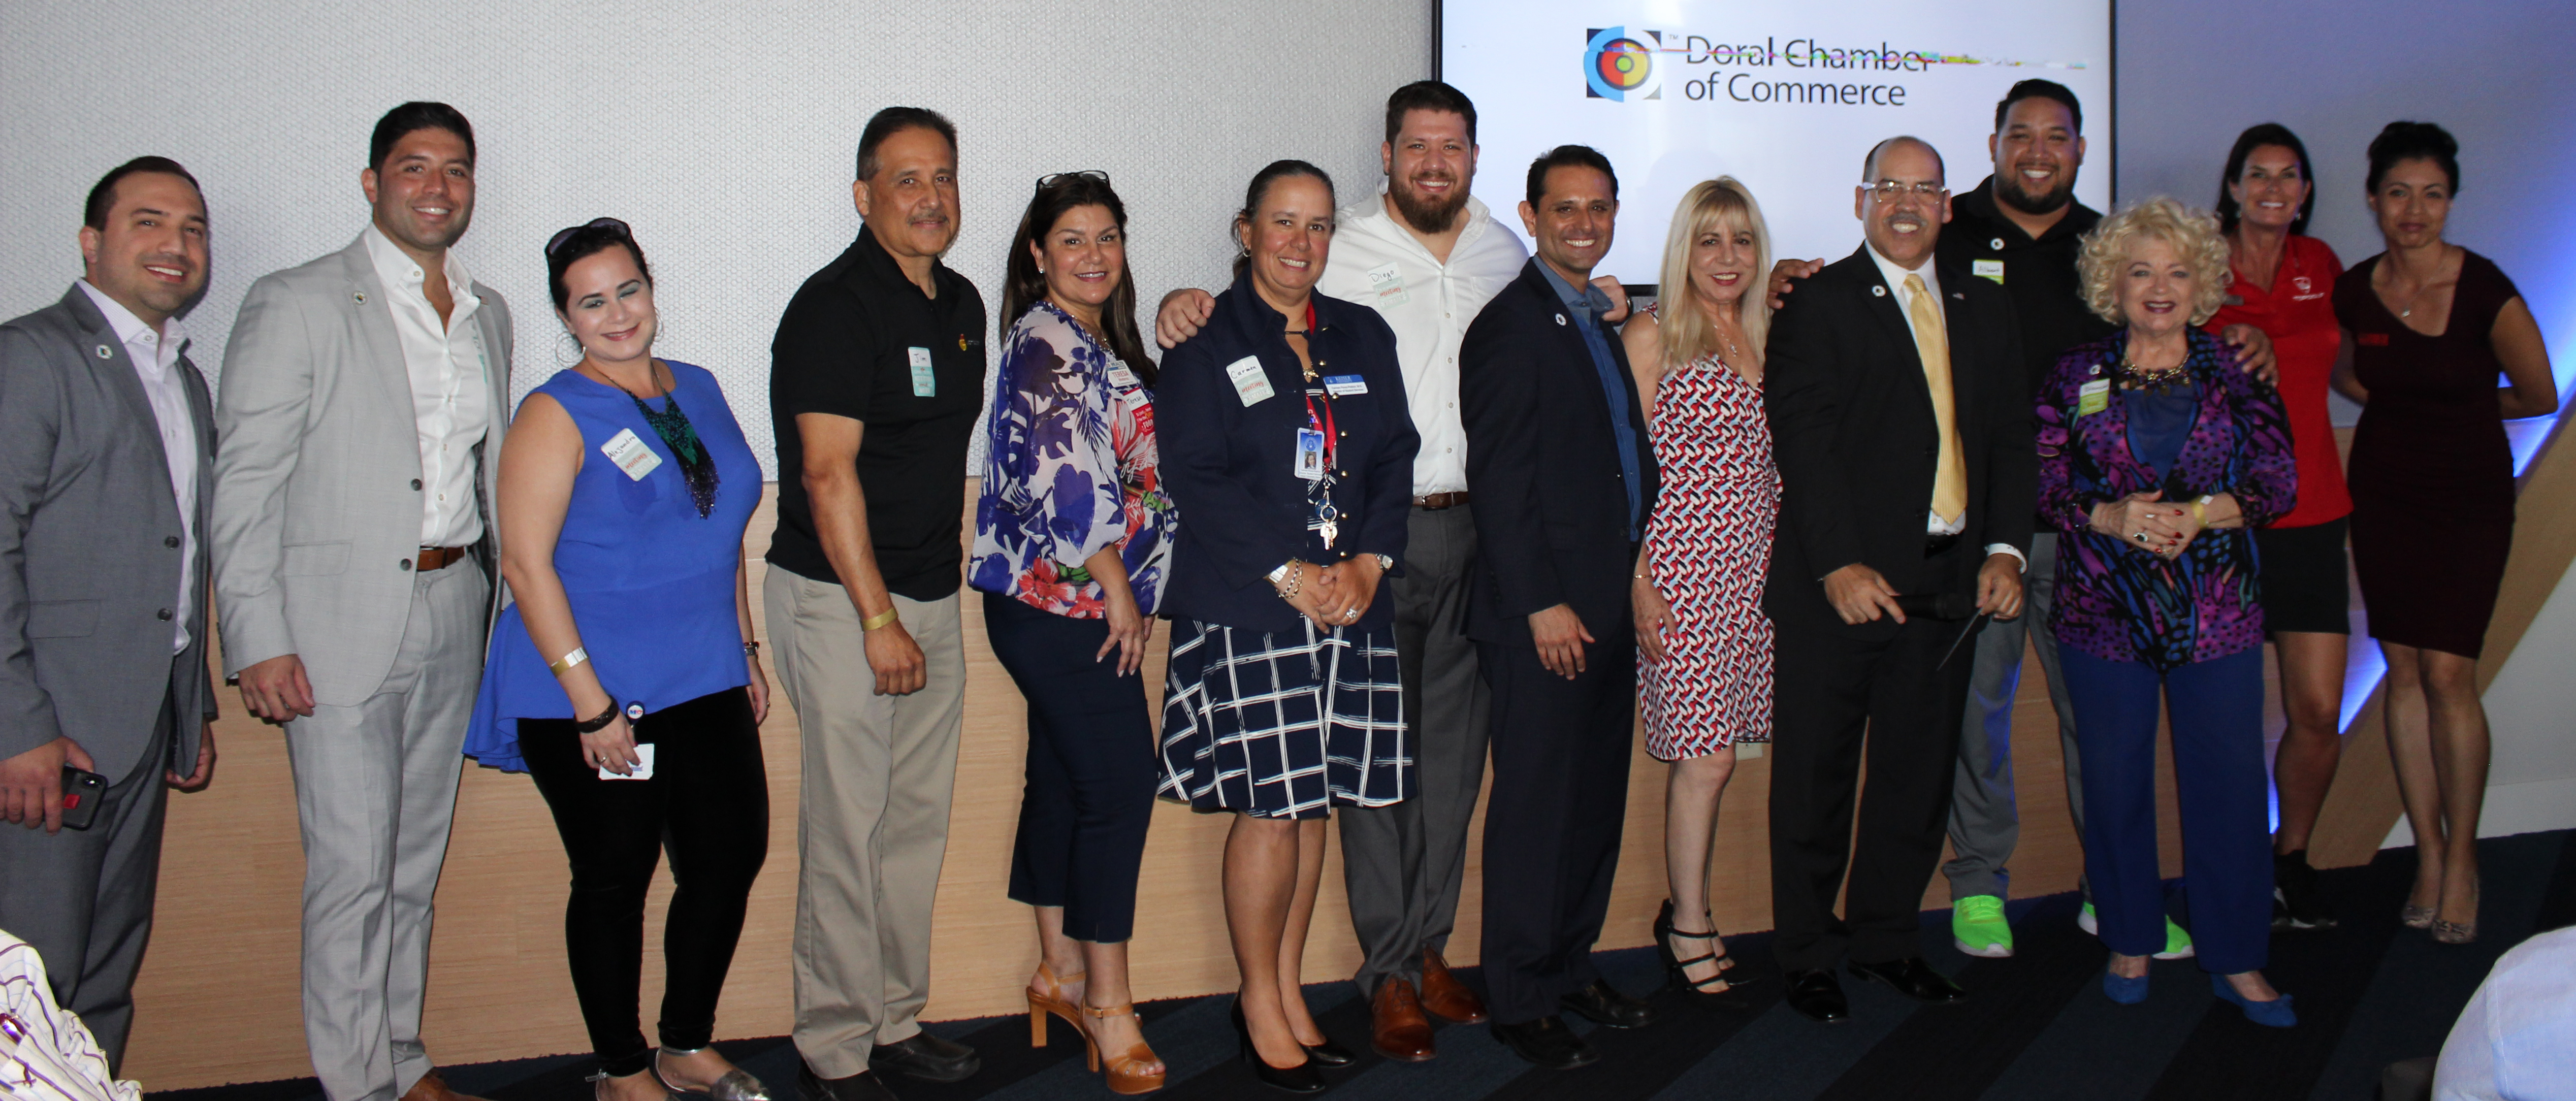 Doral Chamber of Commerce  Best Chamber in Miami & South Florida